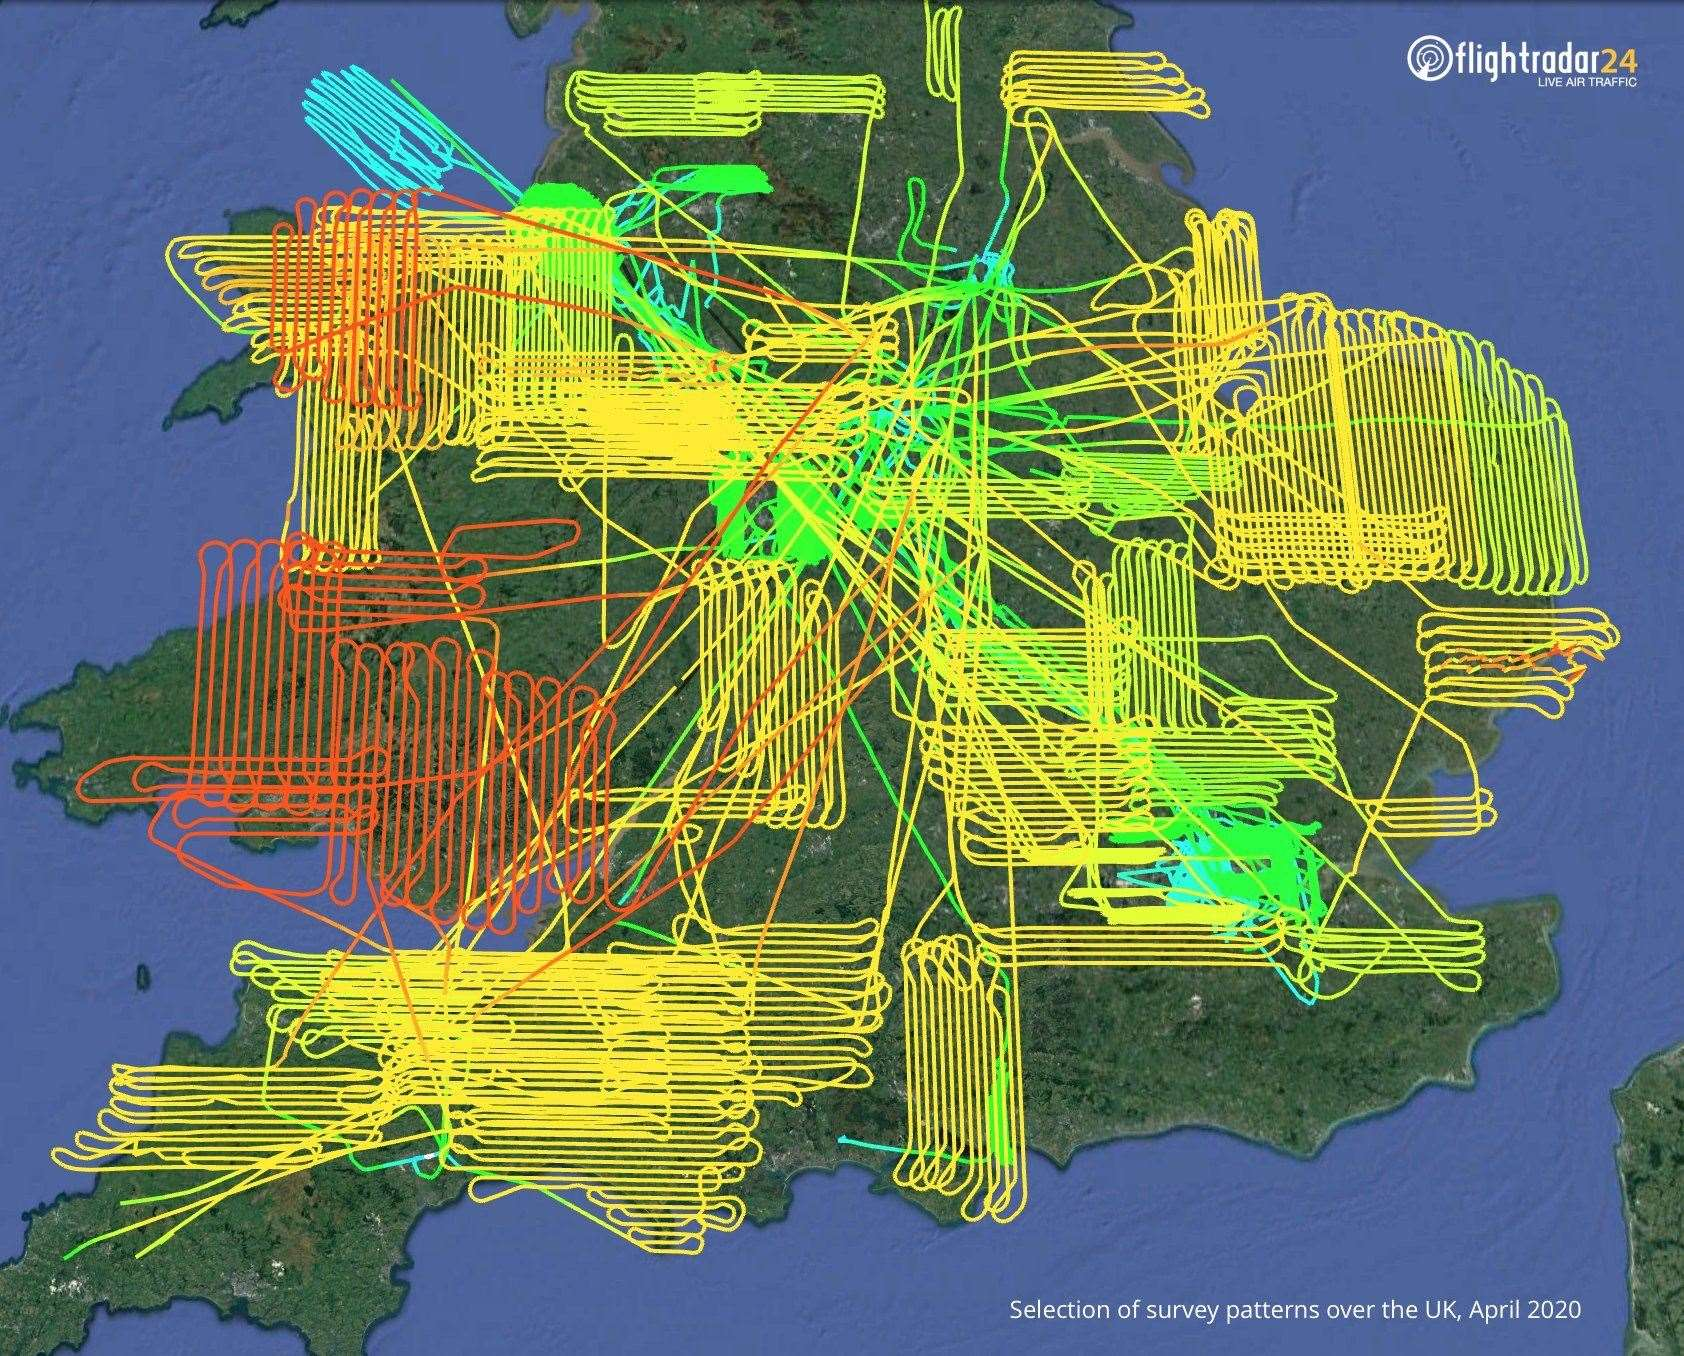 Survey flight paths during April 2020 - Picture :flightradar24.com (33934595)